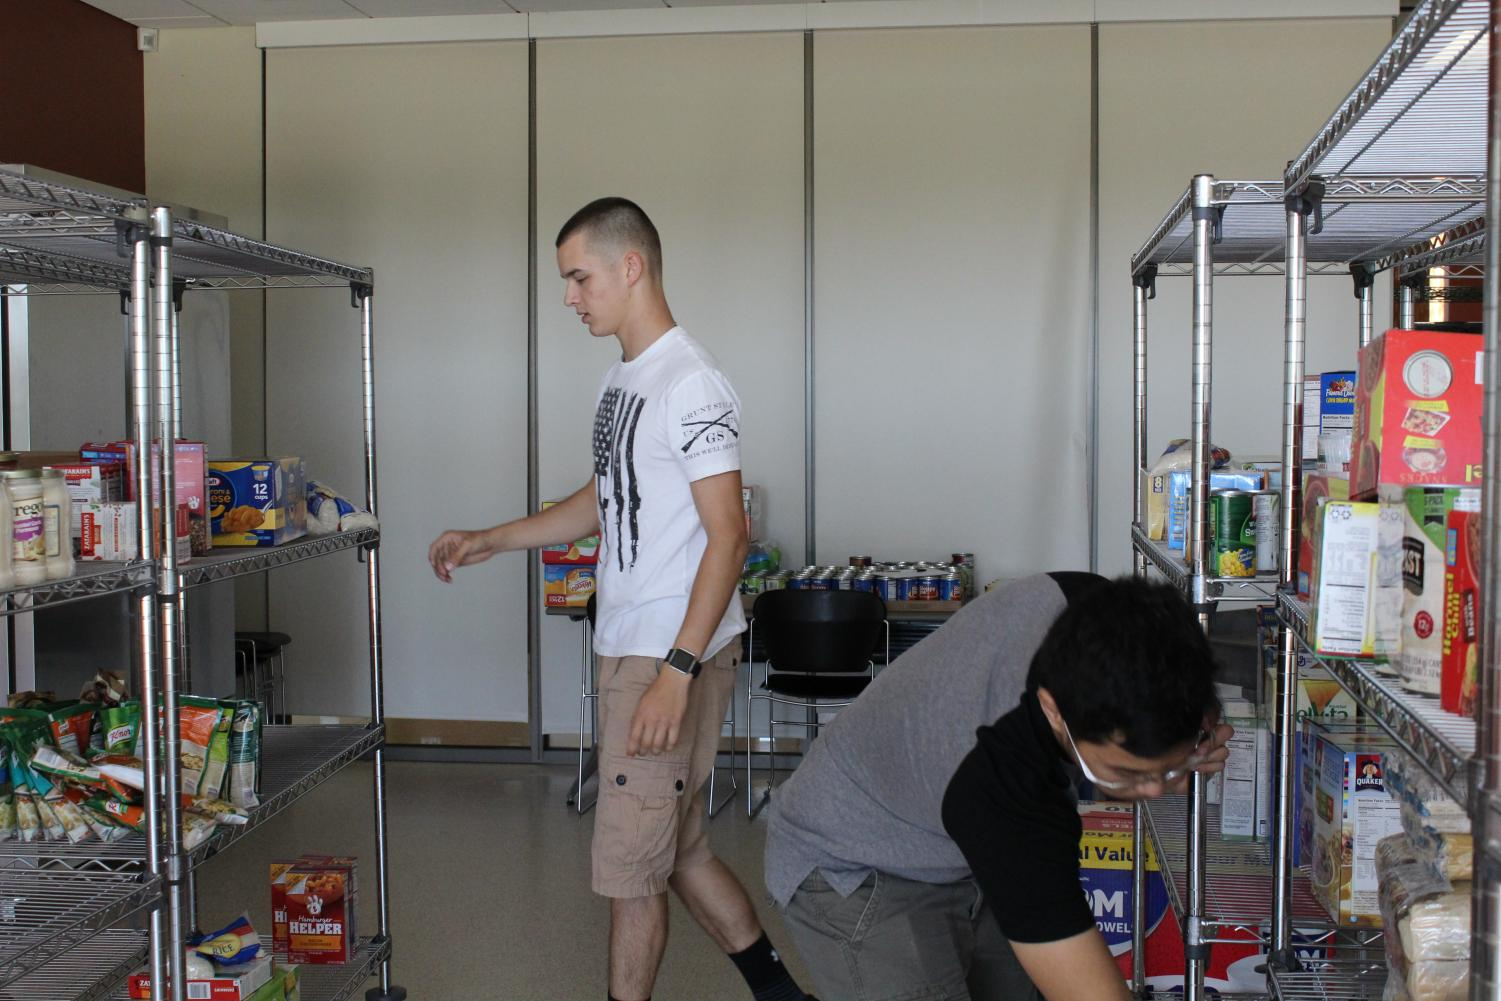 Jackson Wozniak, the Chair of PTK's Vice President (left), and Emilio Edemni, Food Pantry co-officer (right) were reorganizing the food pantry that was recently expanded